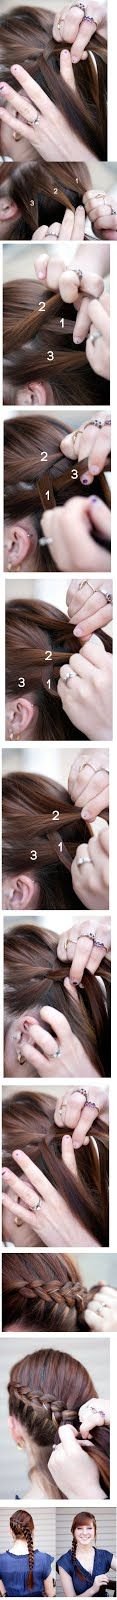 French braid how to - love the close-up detail on this one! Just want it flipped sides...